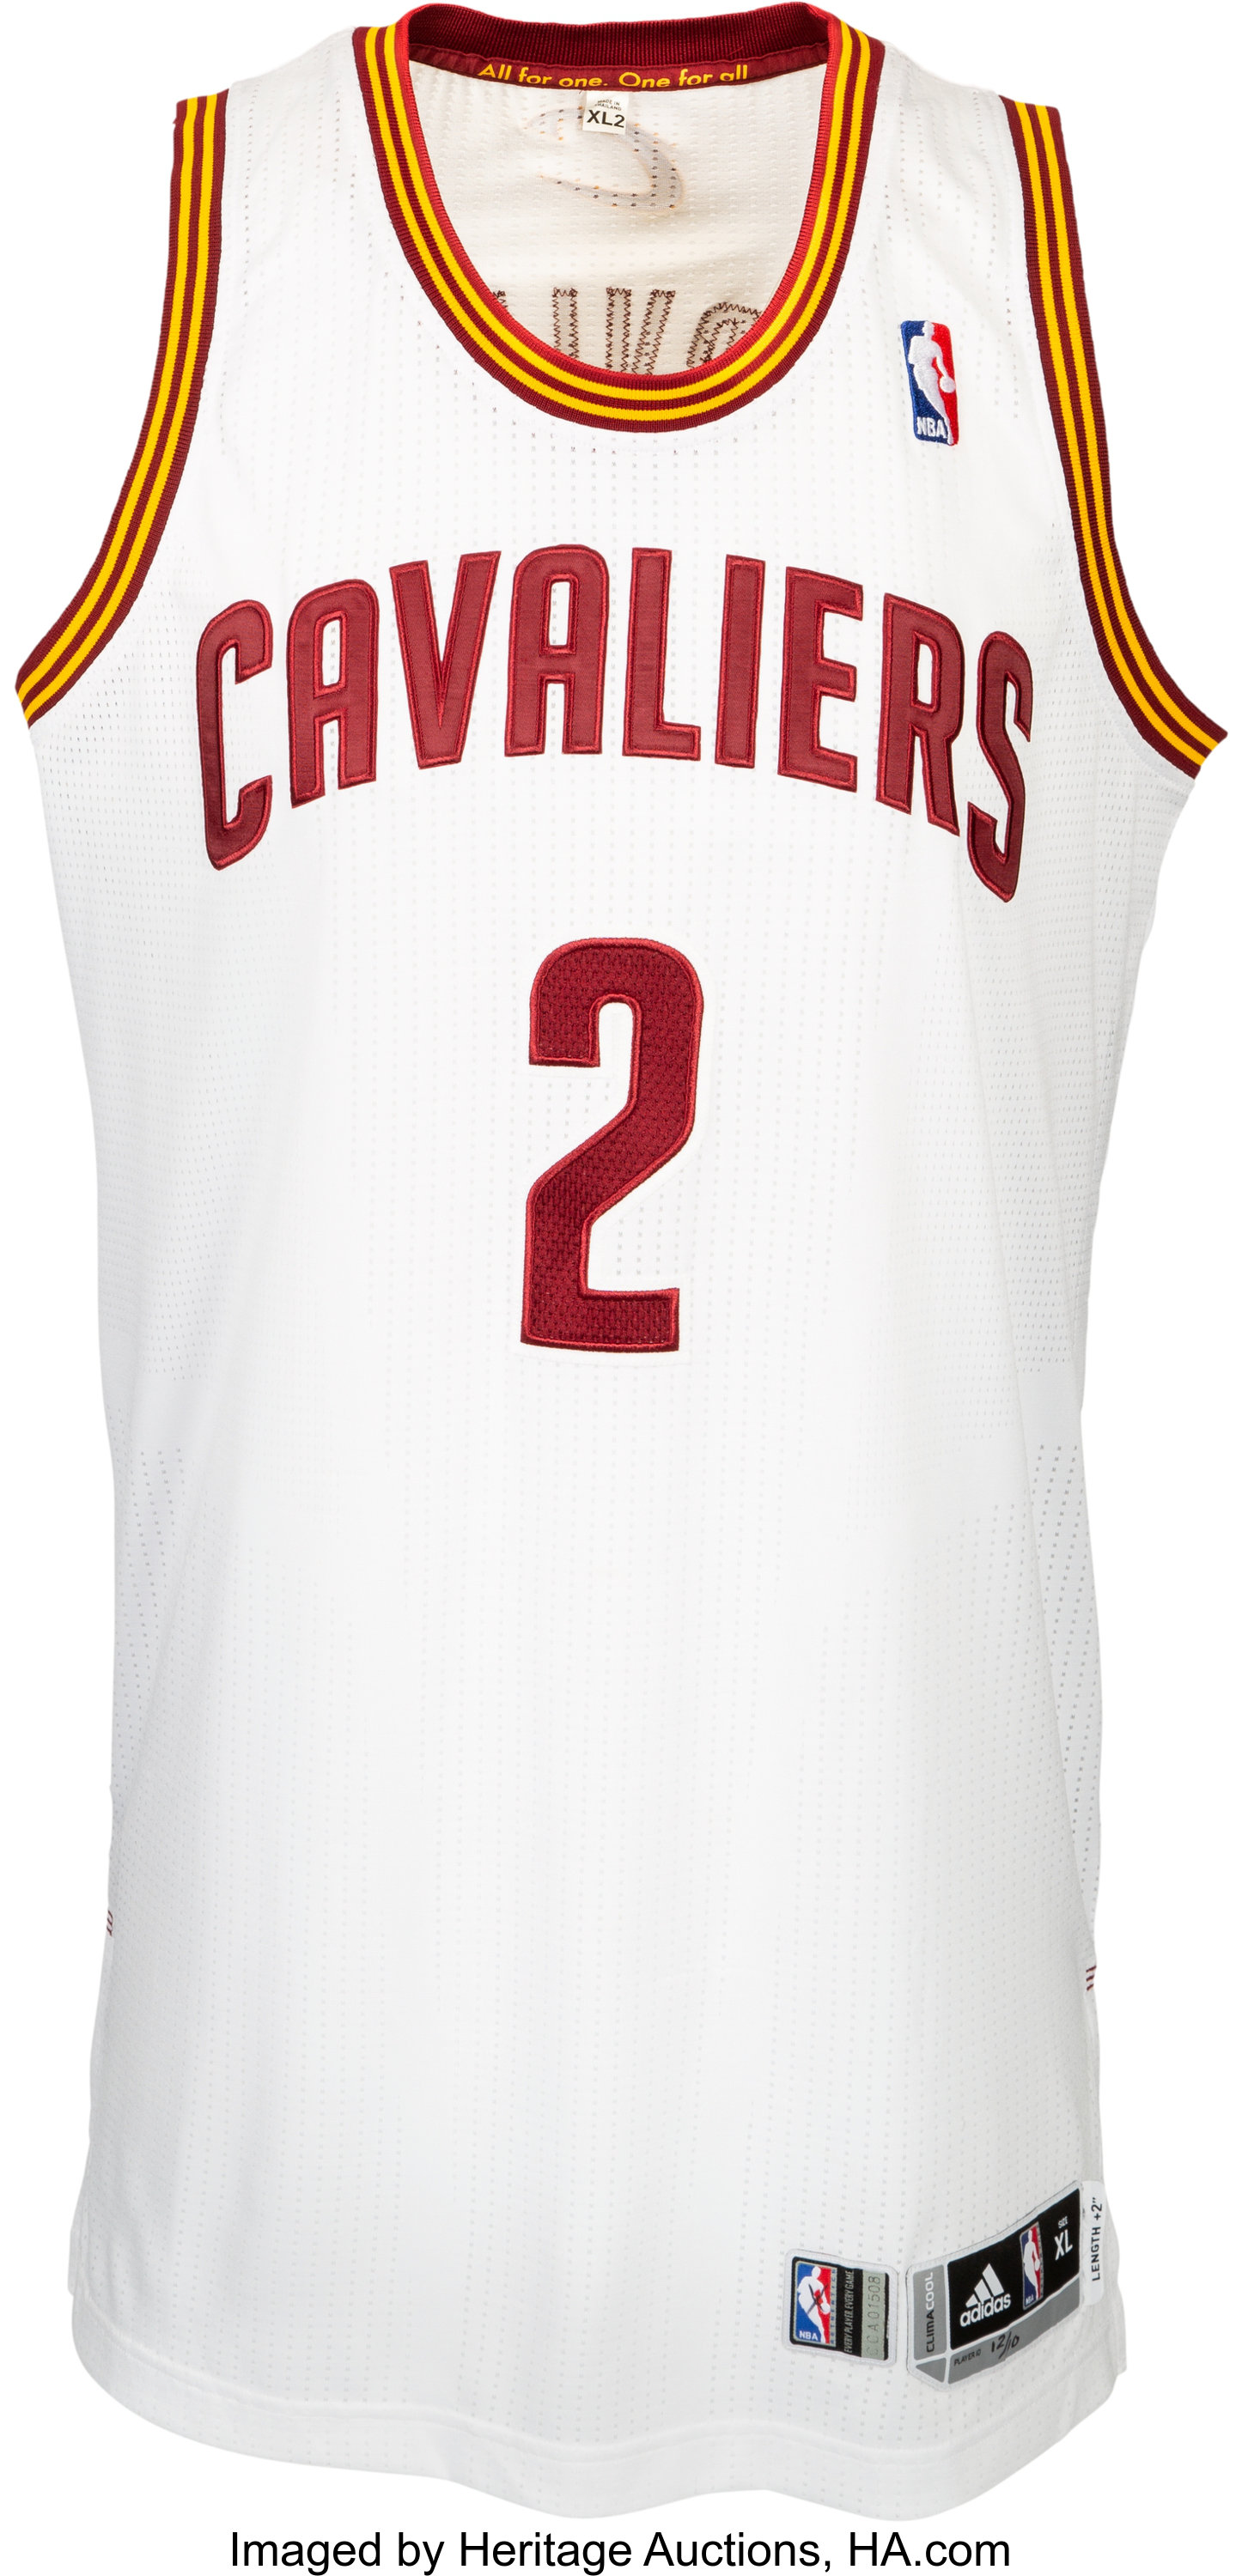 check out 1e0fd fbc37 2013-14 Kyrie Irving Game Worn Cleveland Cavaliers Jersey 12 ...